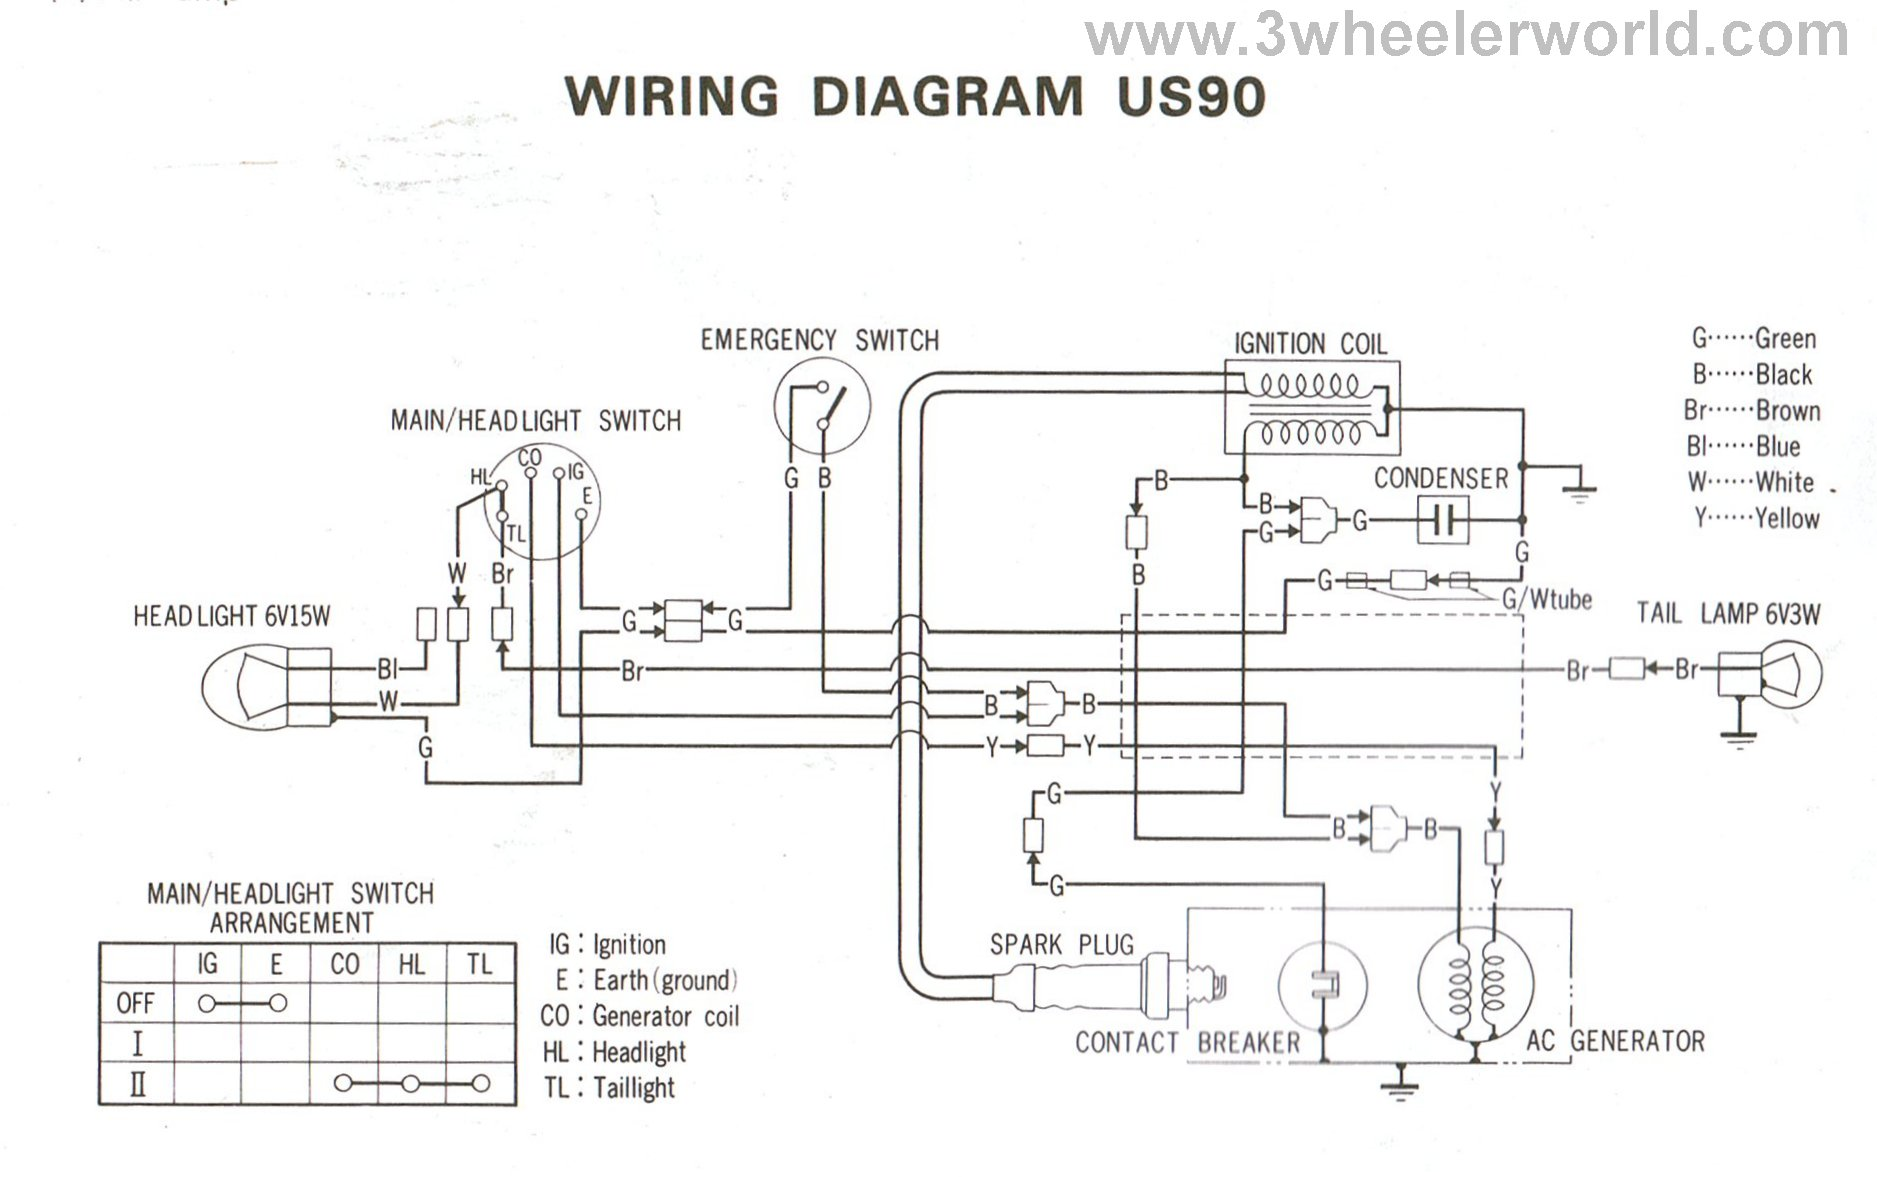 hight resolution of kawasaki 4 wheeler wiring diagram kawasaki free engine kawasaki atv wiring diagram kawasaki bayou 300 wiring